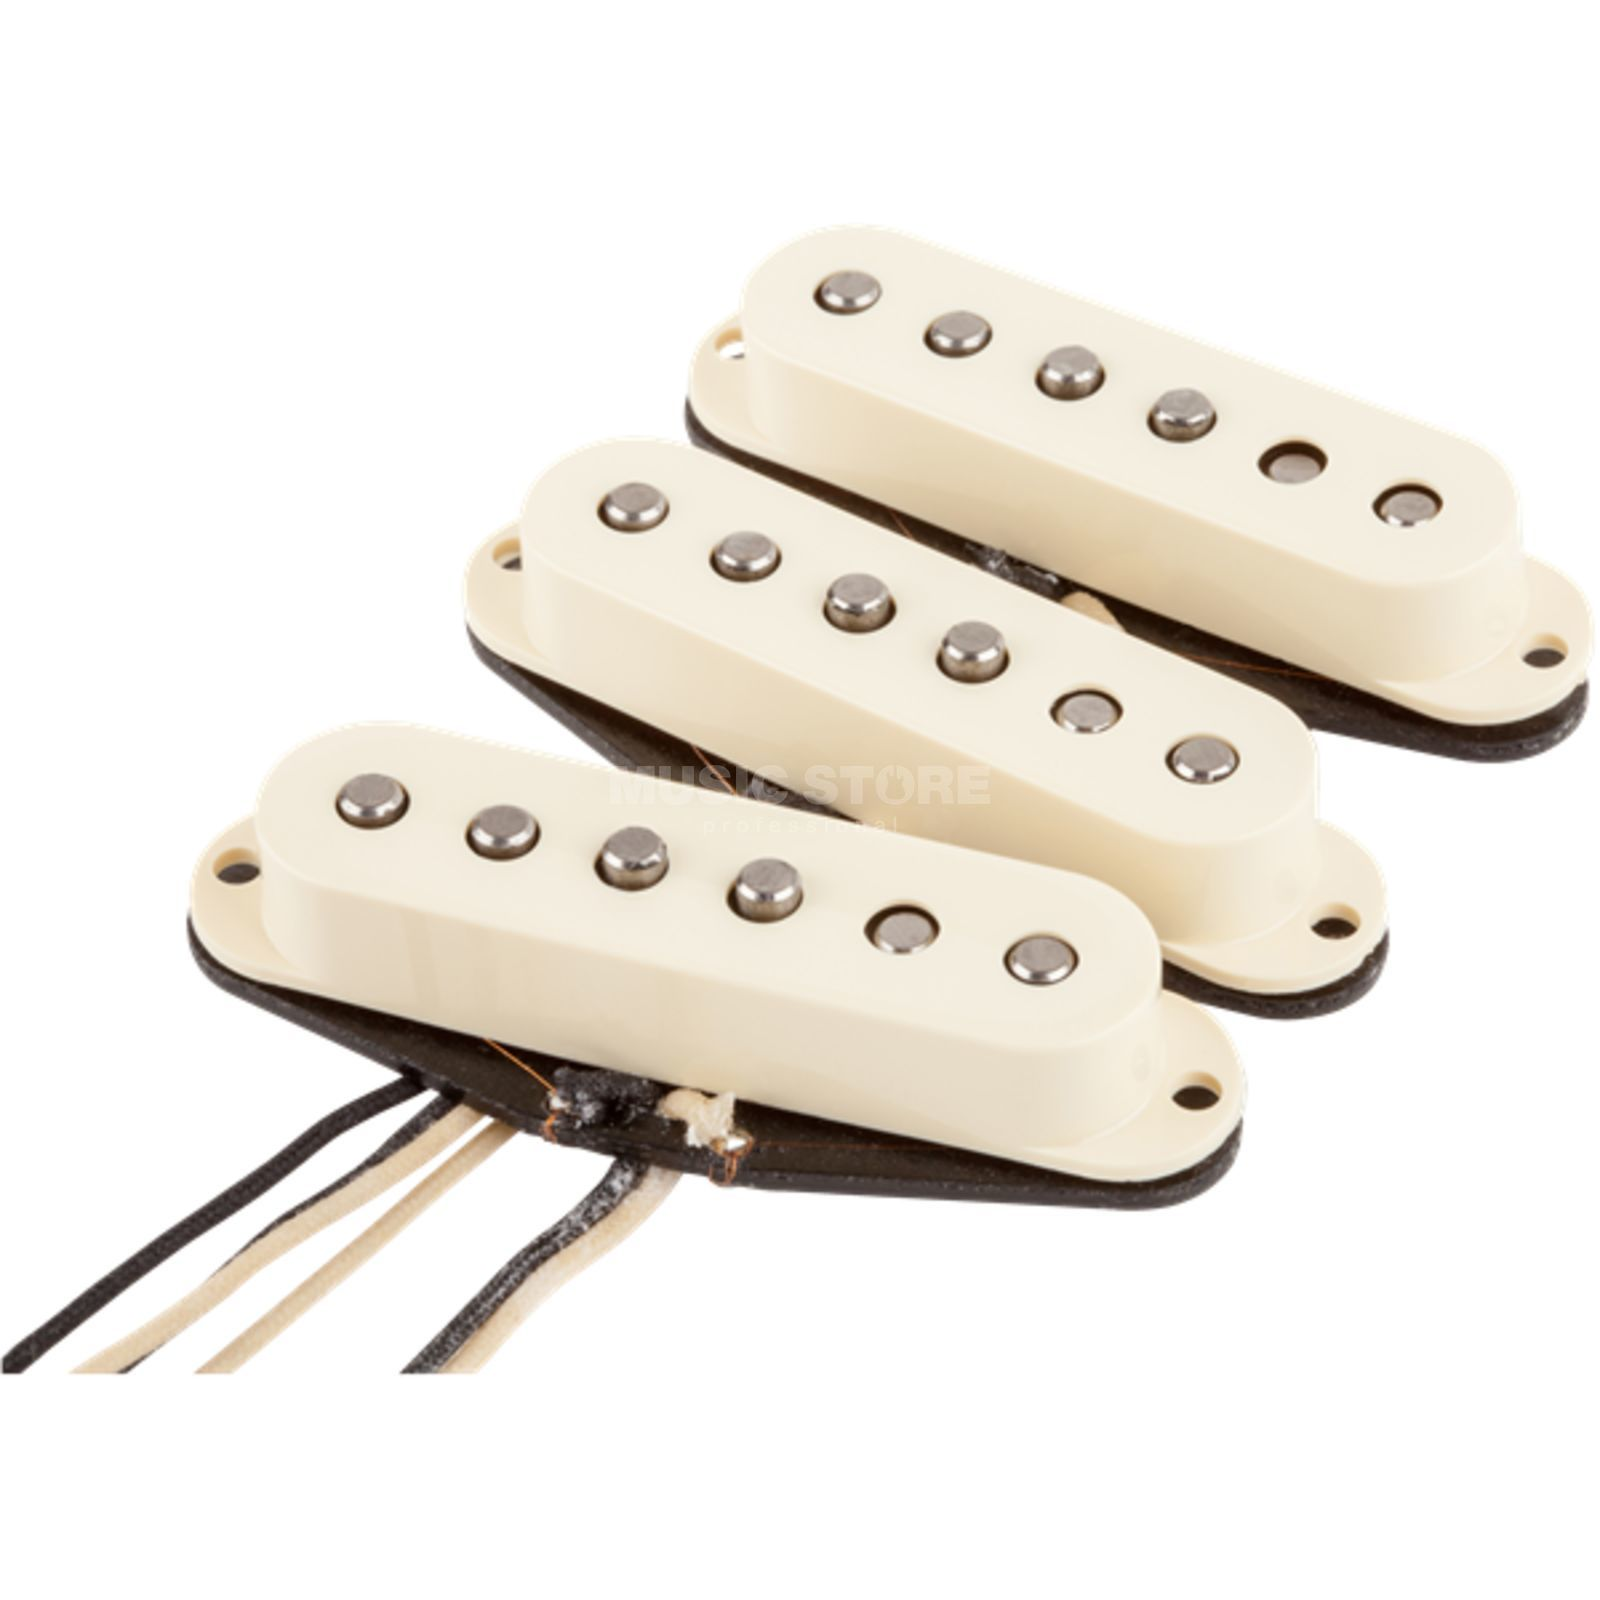 Fender Original 57 / 62 Strat Set Pickup Replacement Produktbild